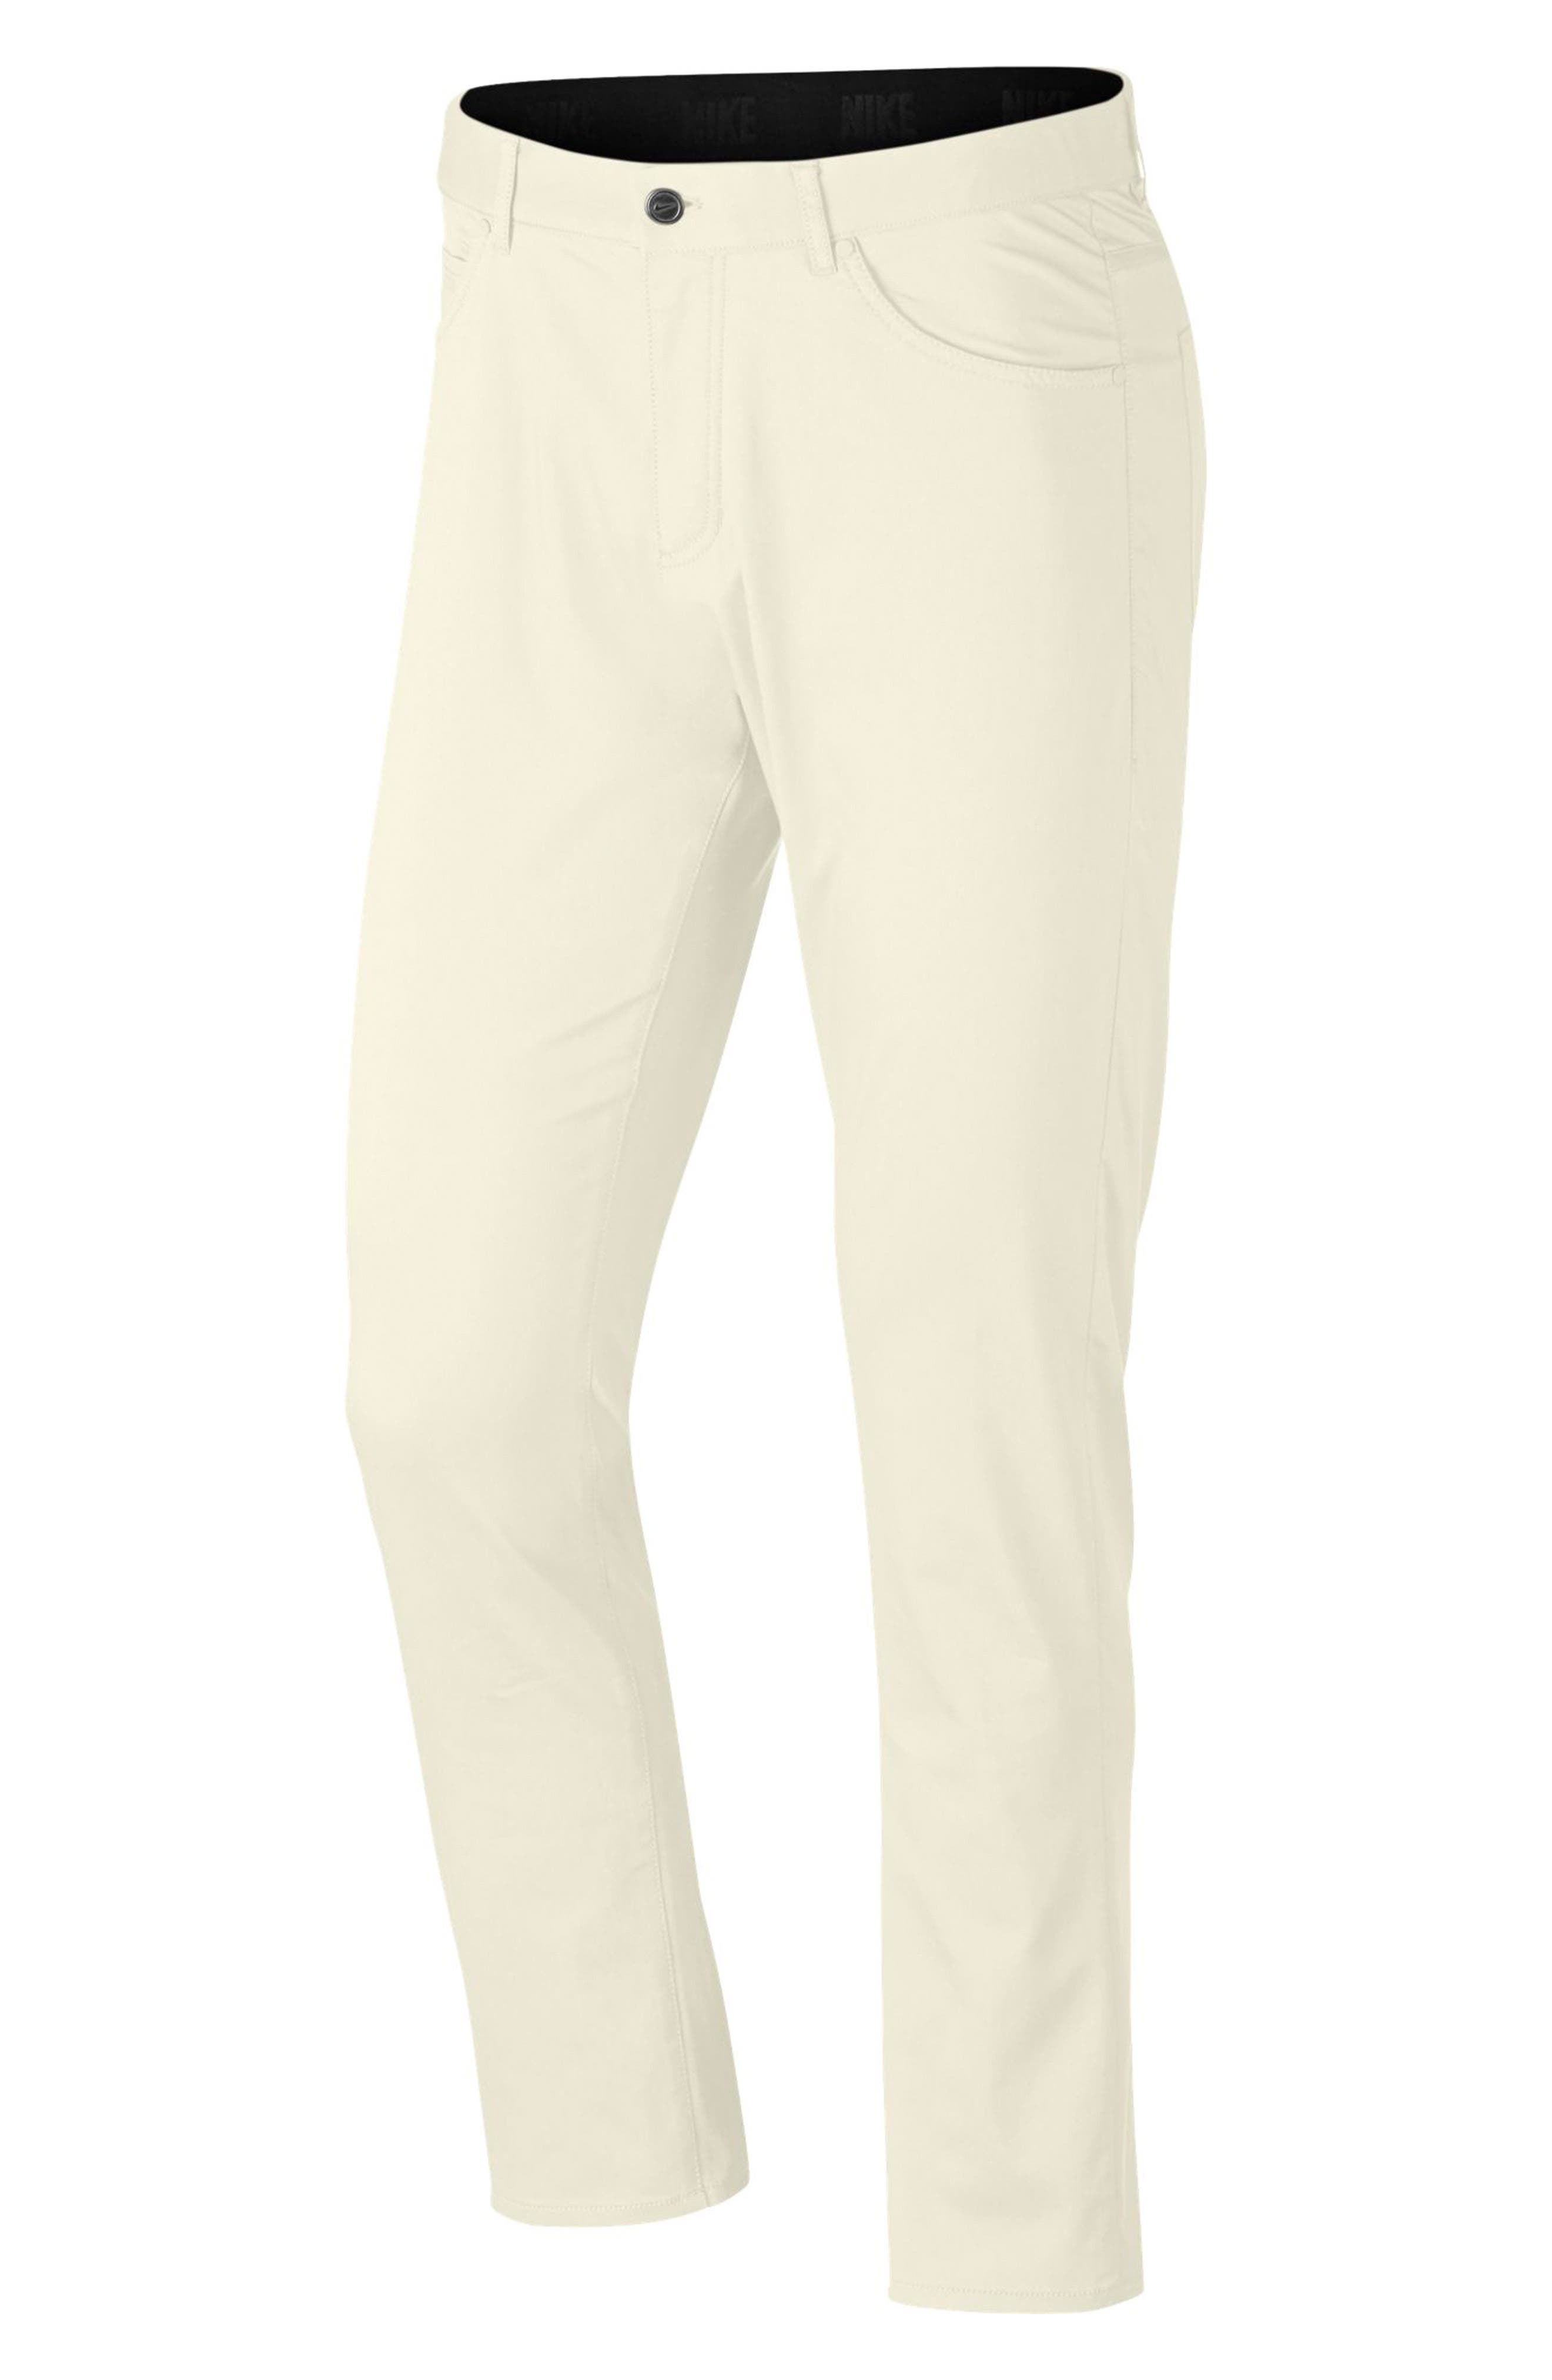 498b96f77511b Men s Pants Golf Clothing   Apparel